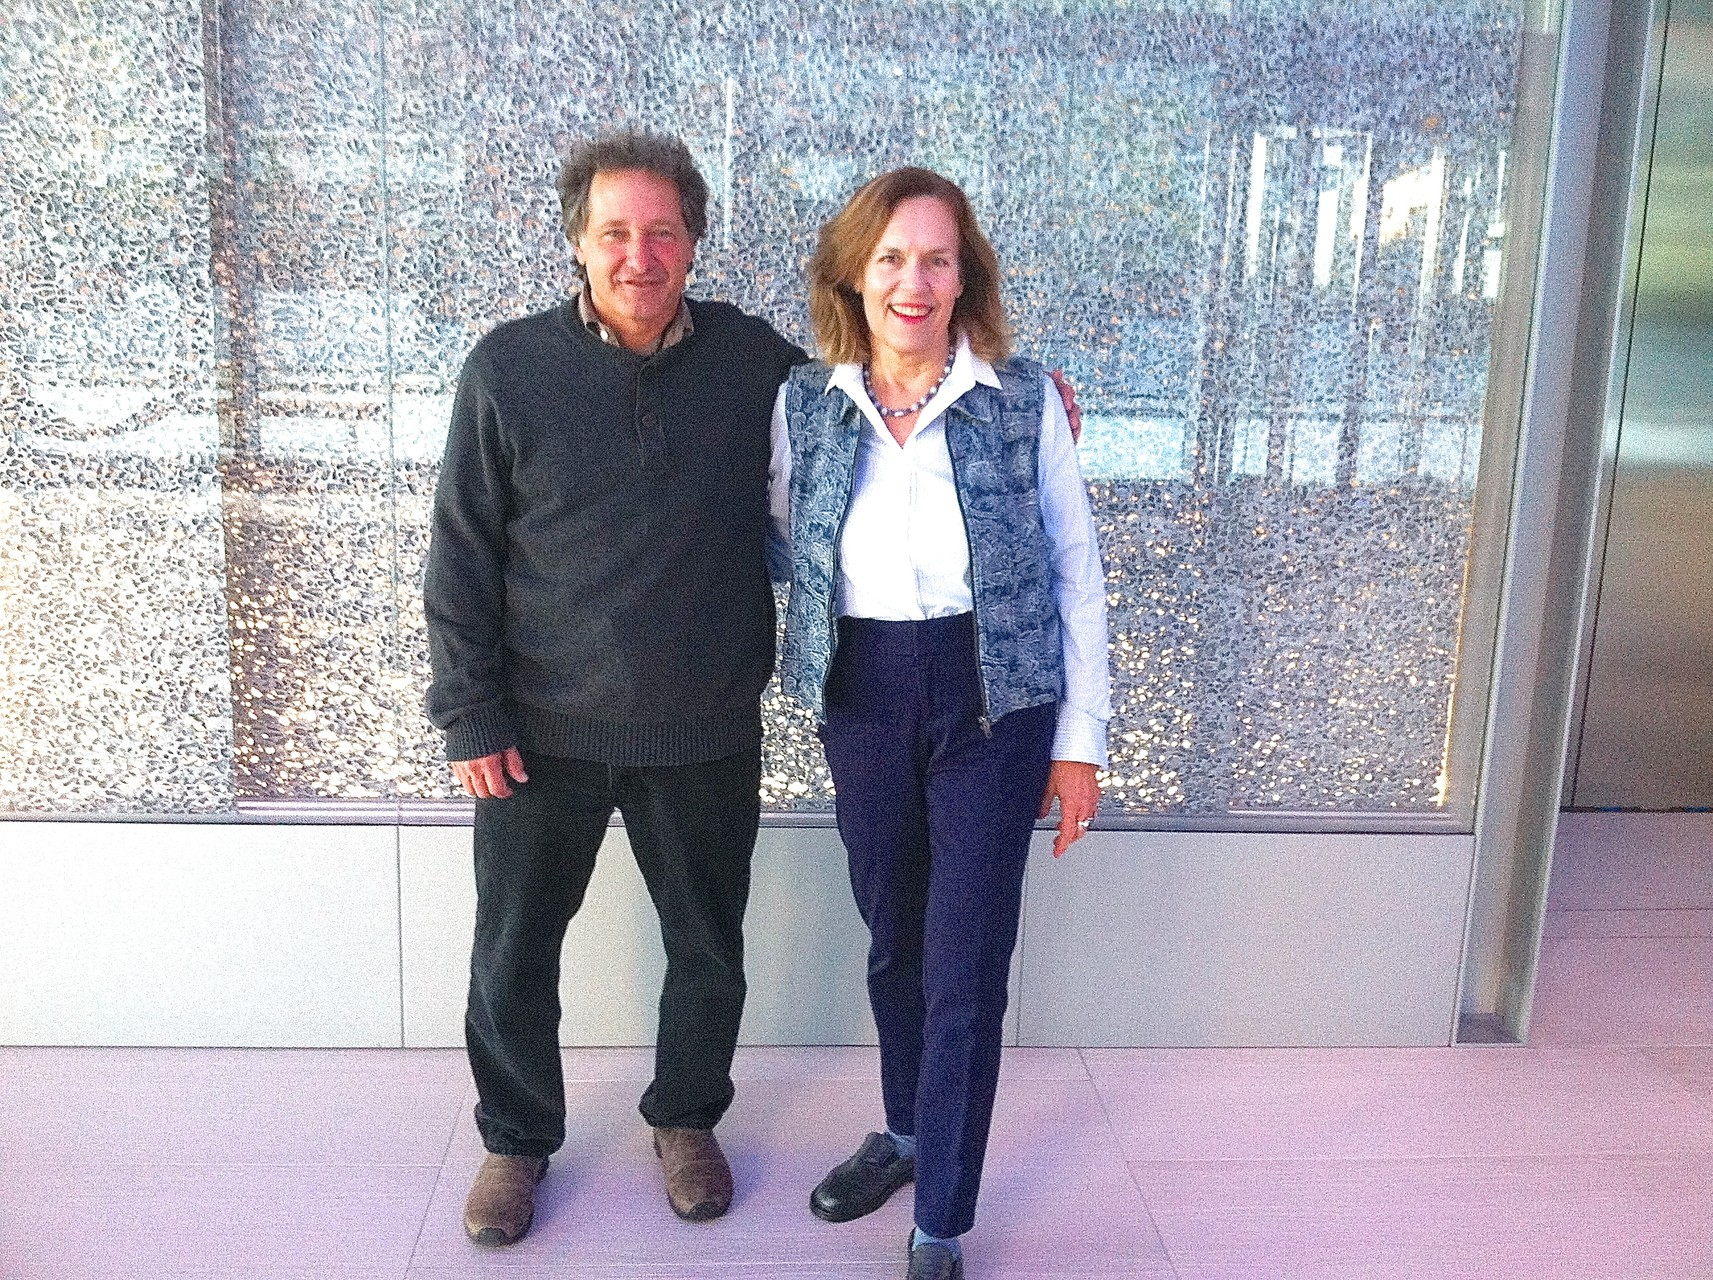 Dr. Joseph Grippo and Dr. Lorraine J. Gudas, at Roche Labs, Alexandria Center 10-26-15